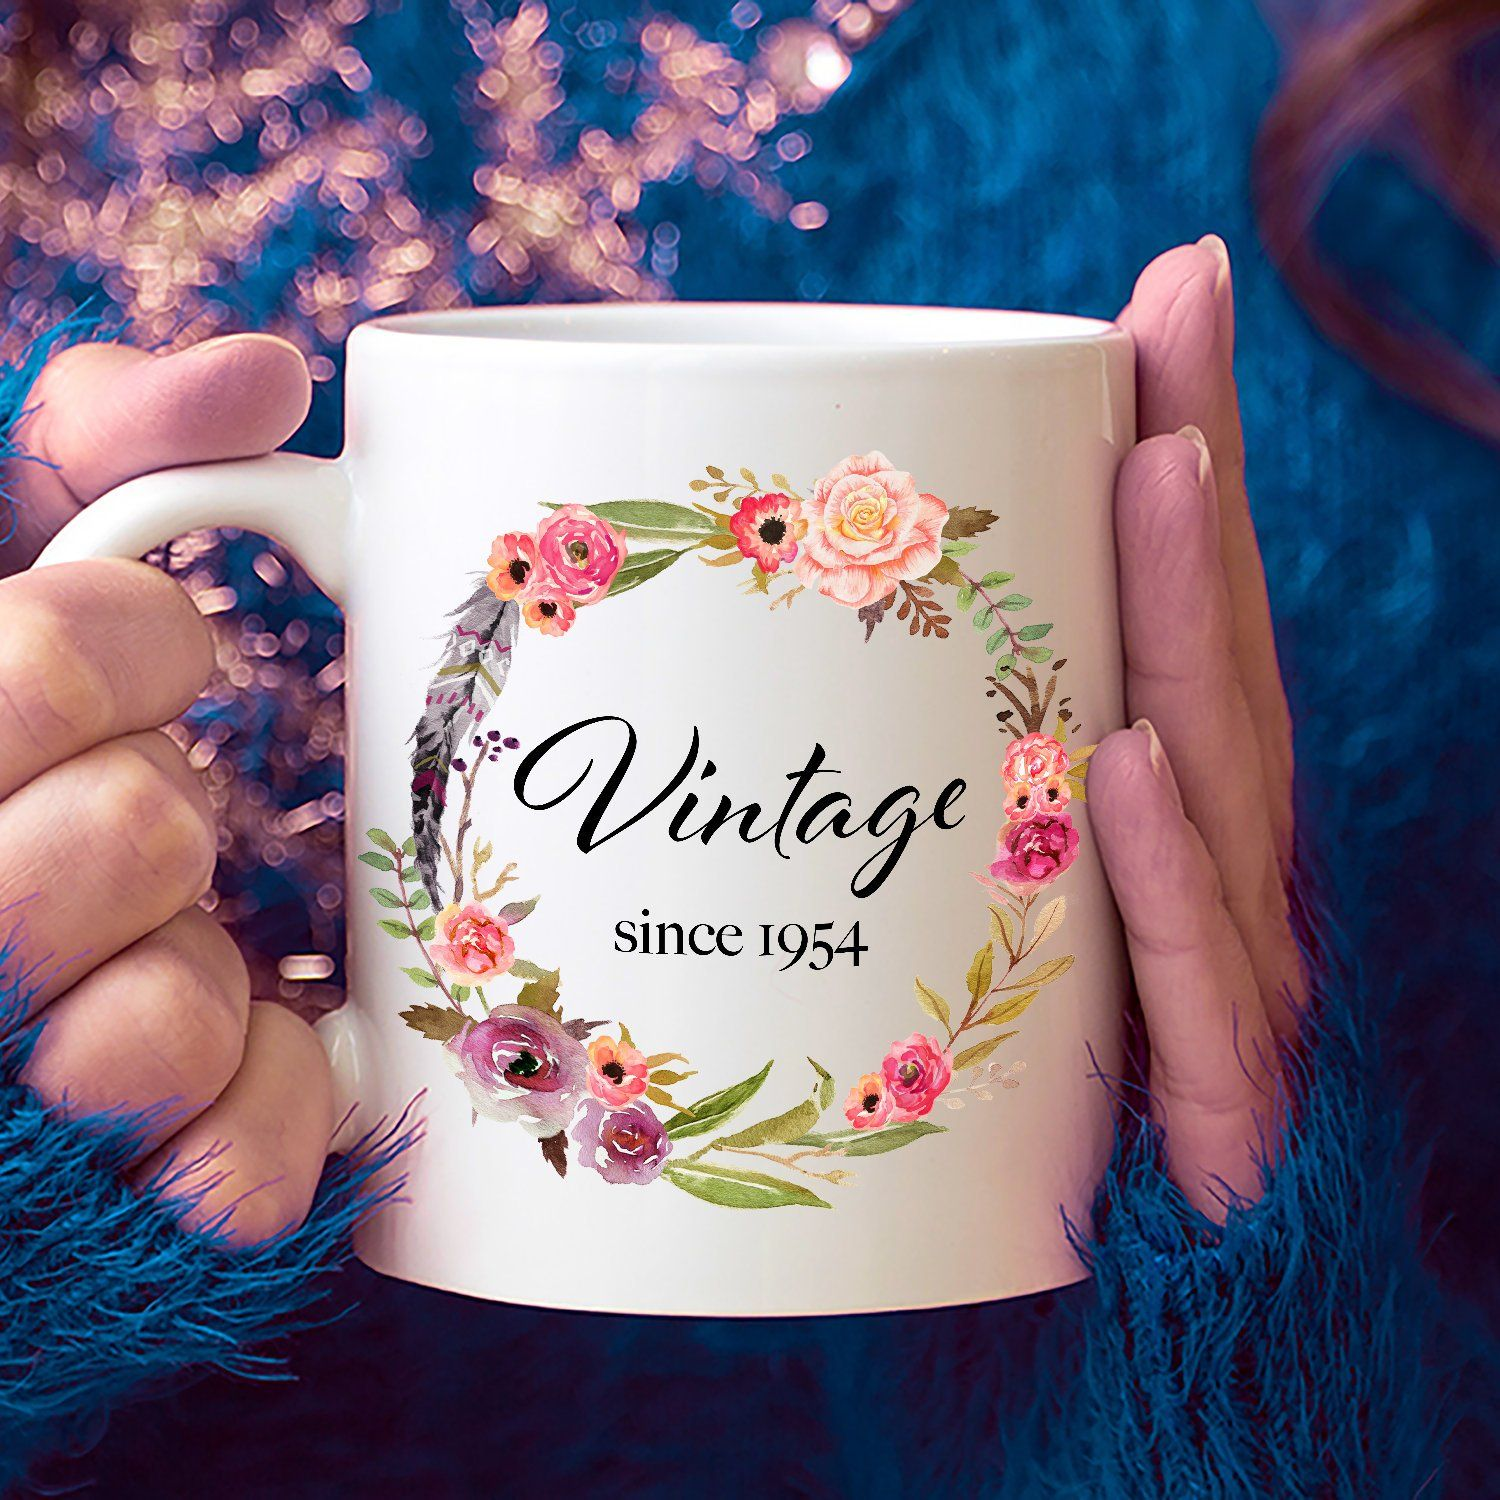 65th Birthday Ideas 65 Year Old Woman Gifts For Women Her Vintage Since 1954 Mug Yr By LittleBeeHome